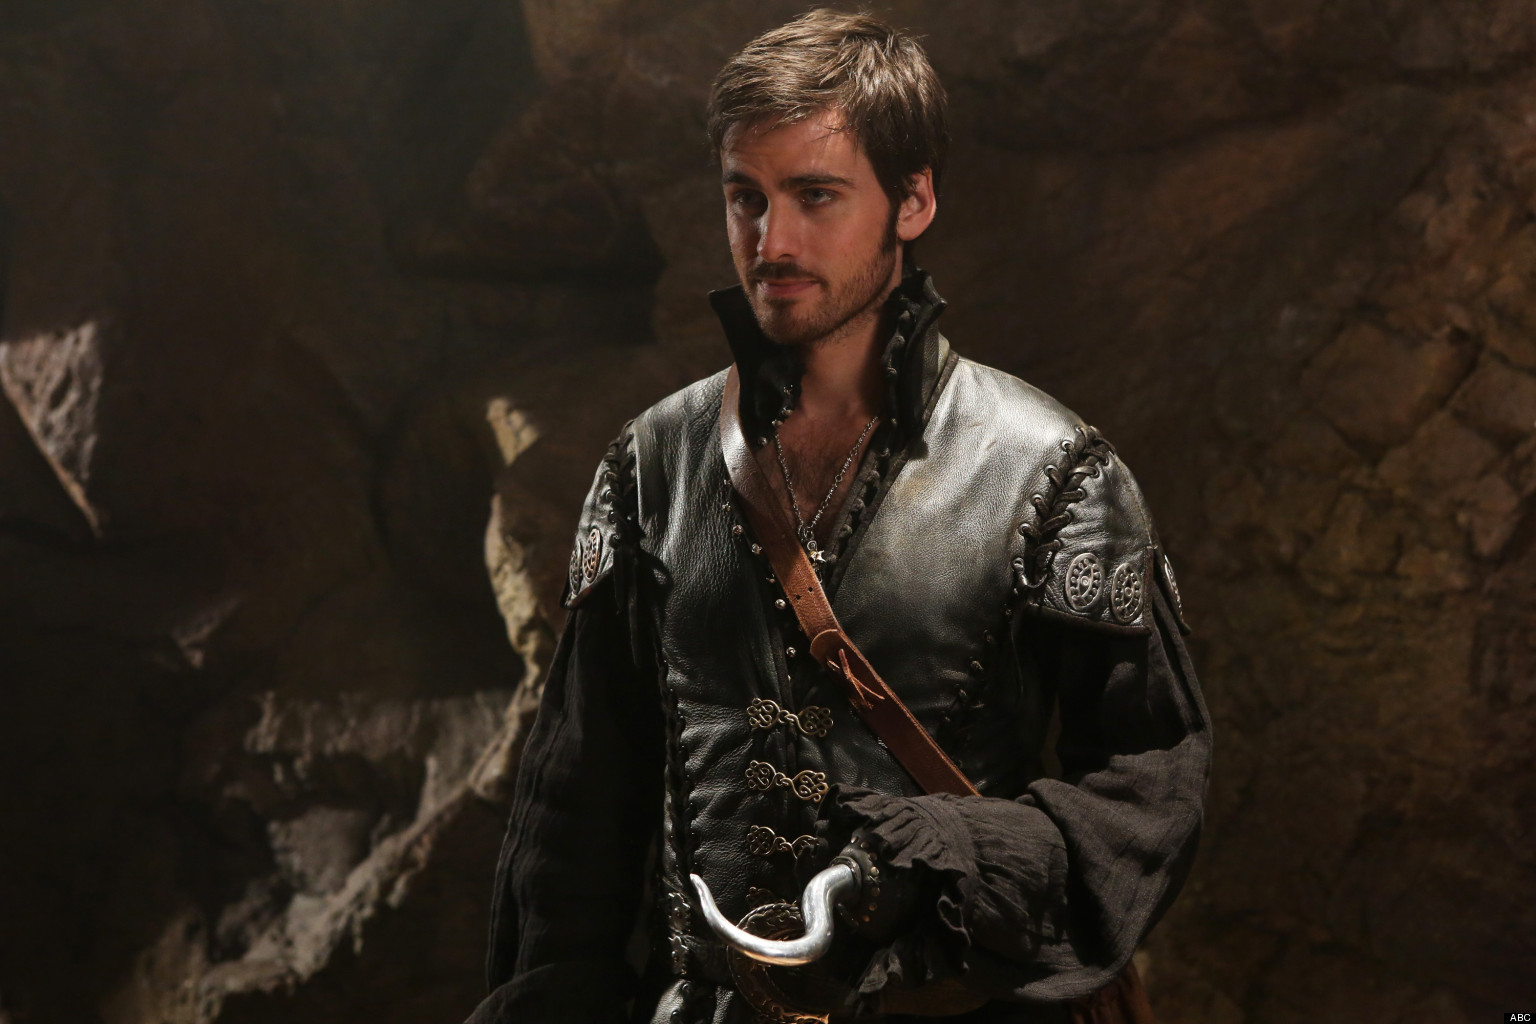 who plays hook in ouat